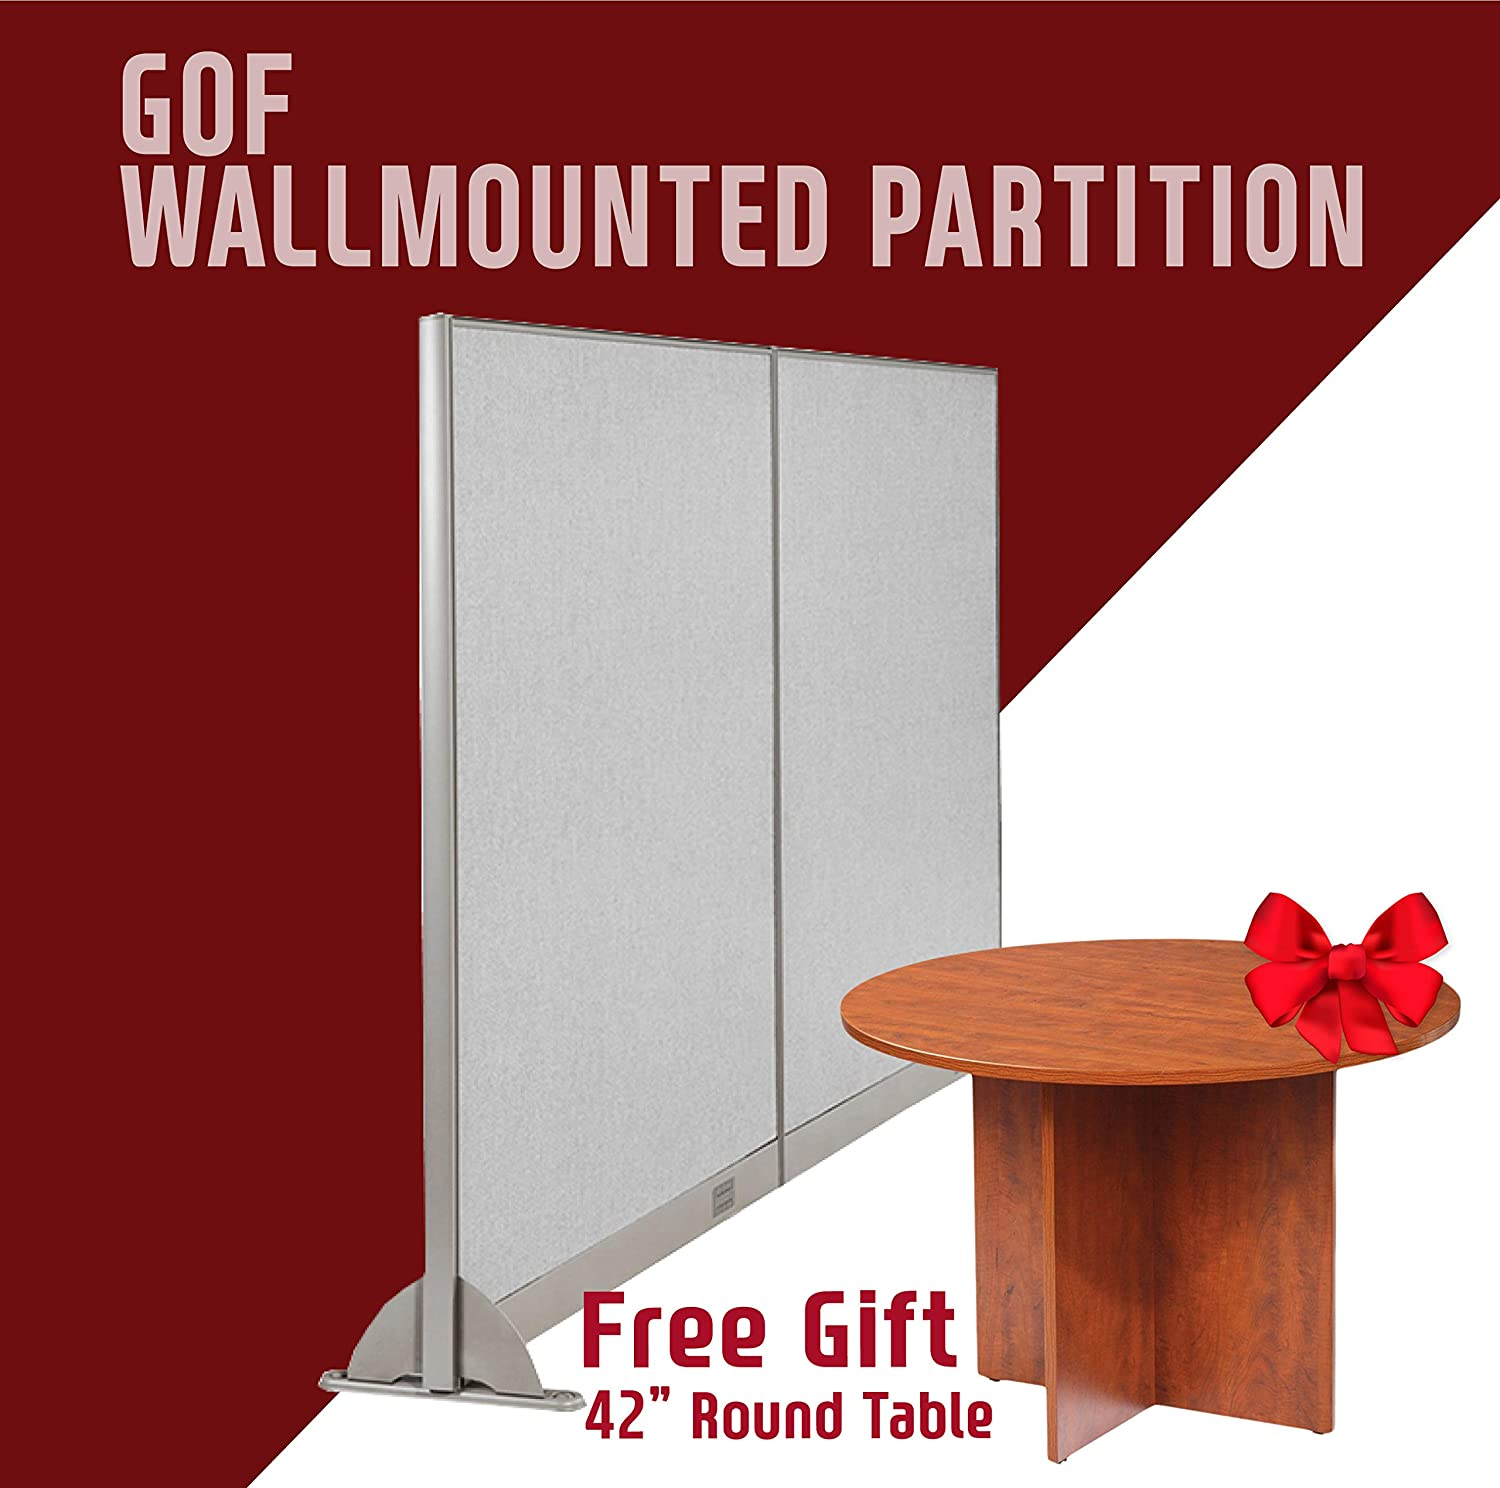 GOF Wall Mounted Office Partition, Large Fabric Room Divider Panel, 96